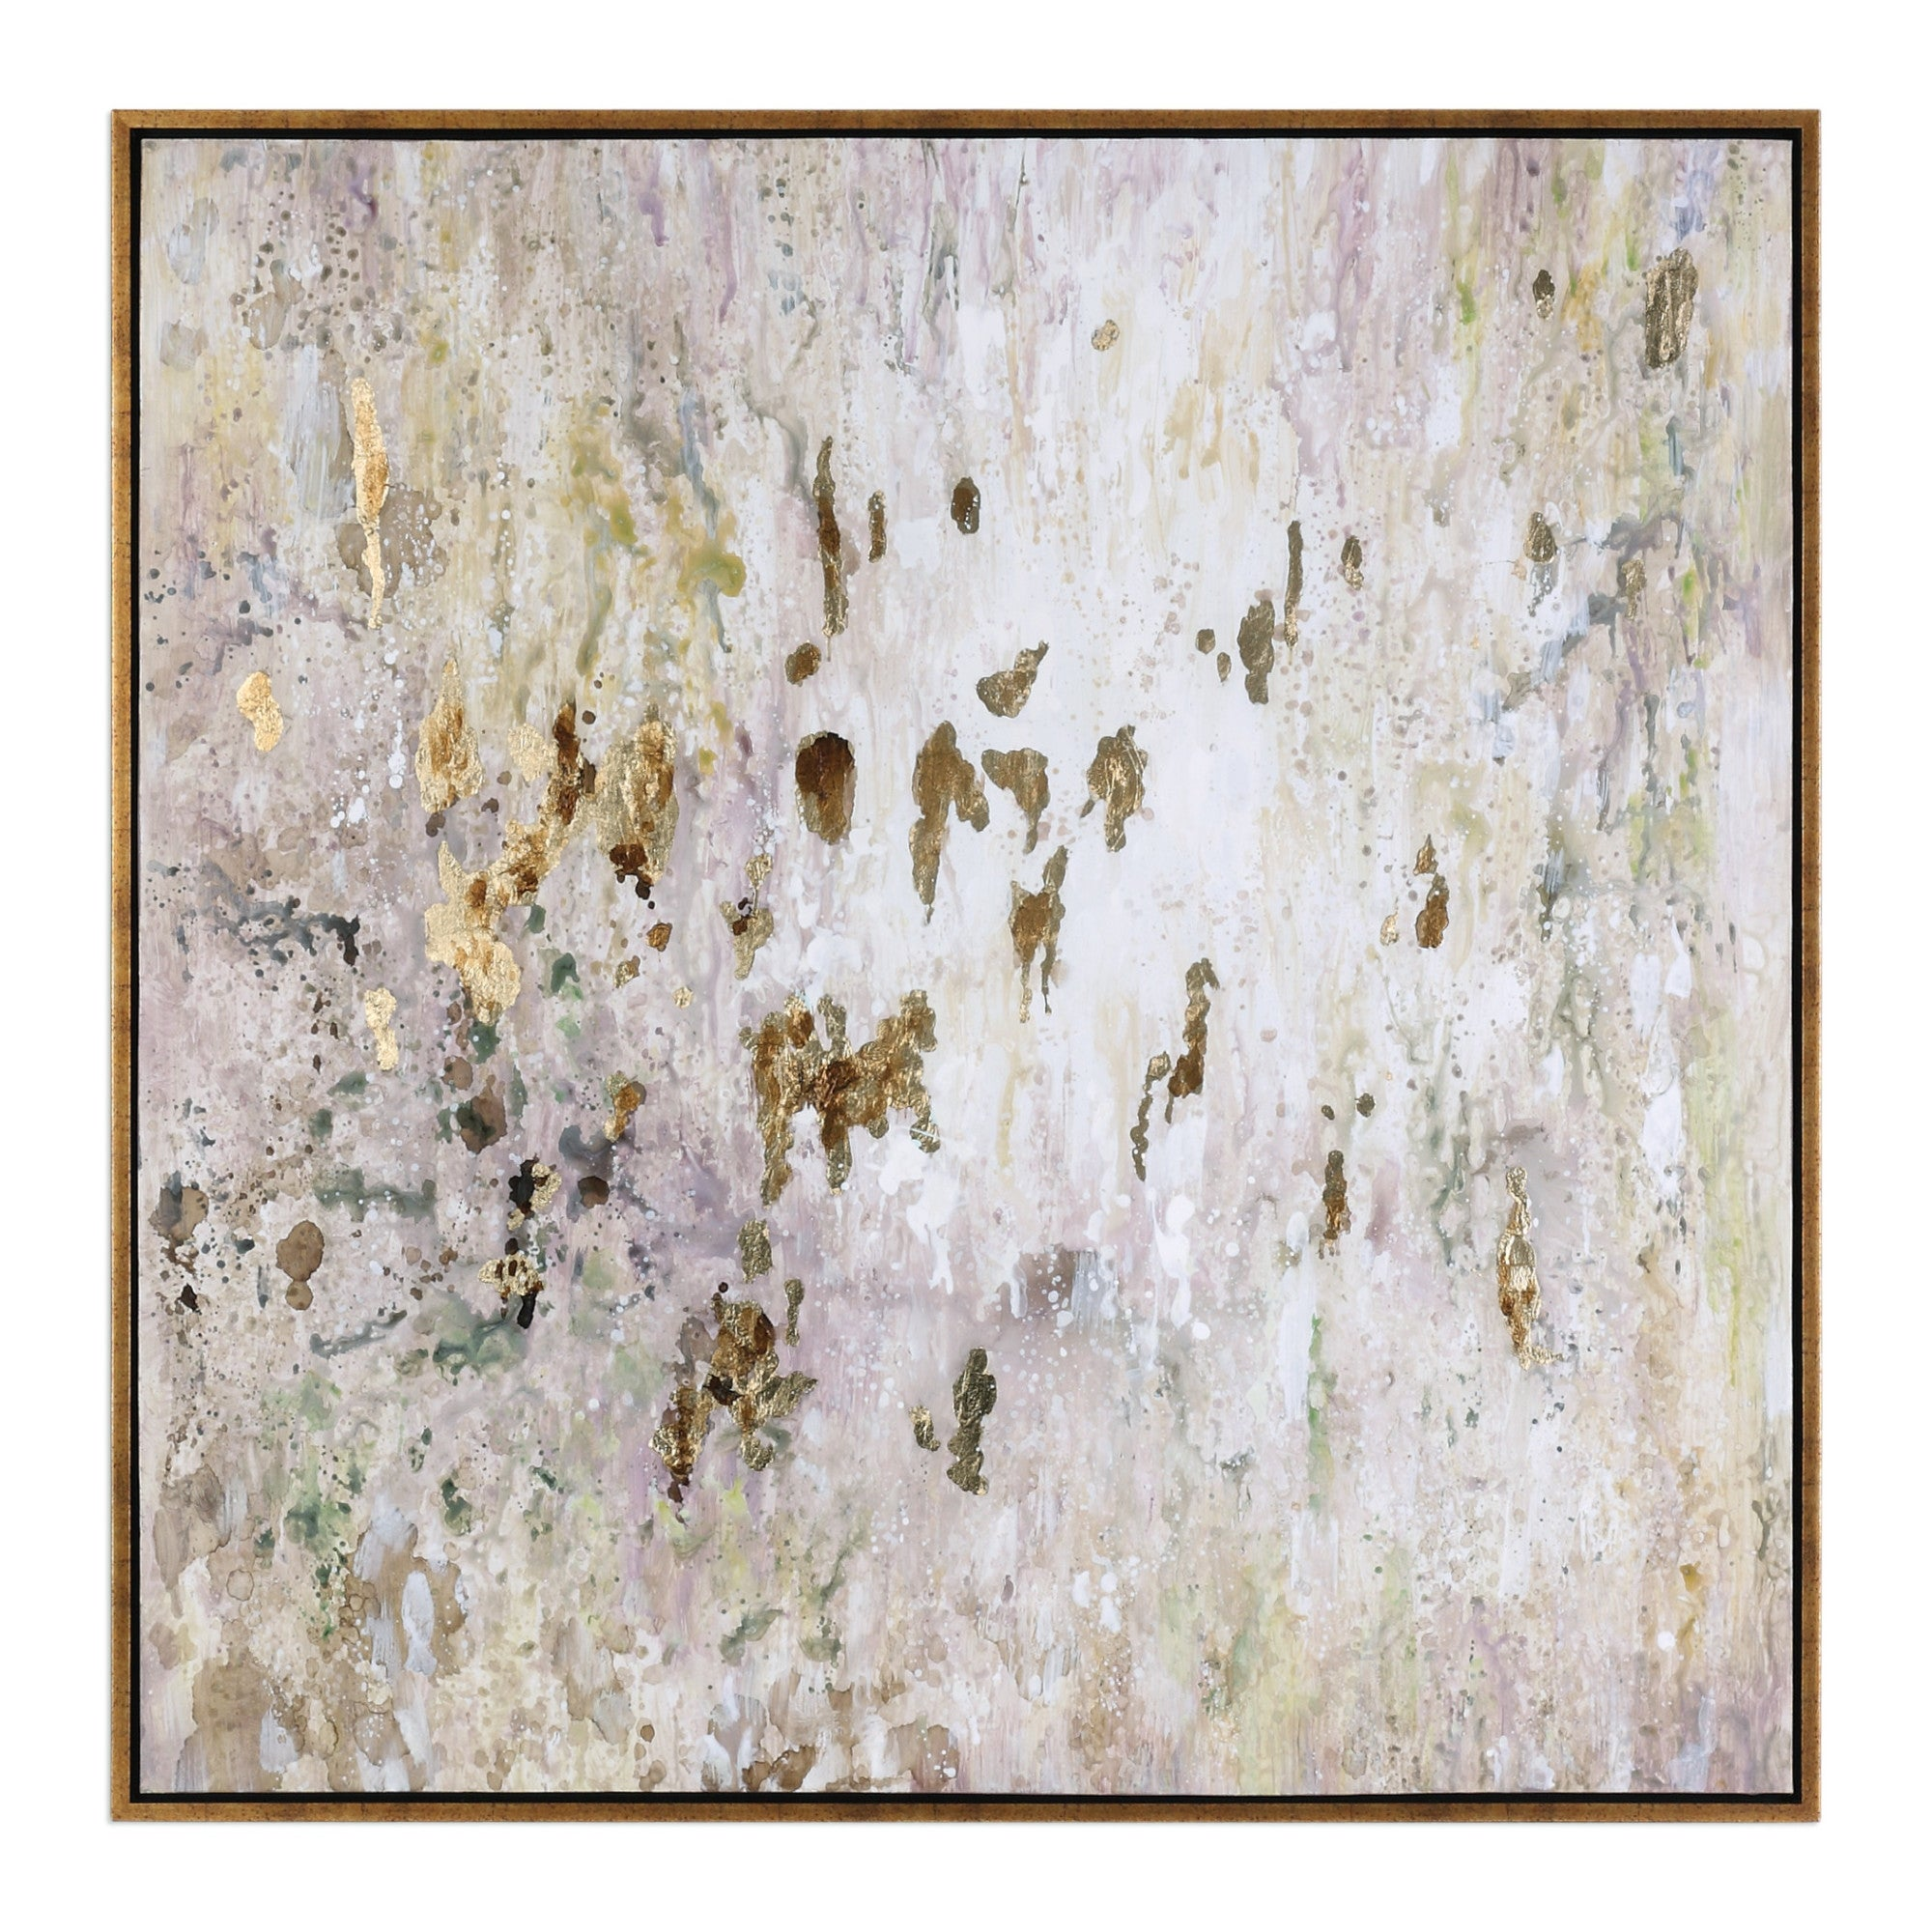 Uttermost 34362 Golden Raindrops 62 X 62 Framed Abstract Painting On Browns Silver Leaf Frame Overstock 30839187